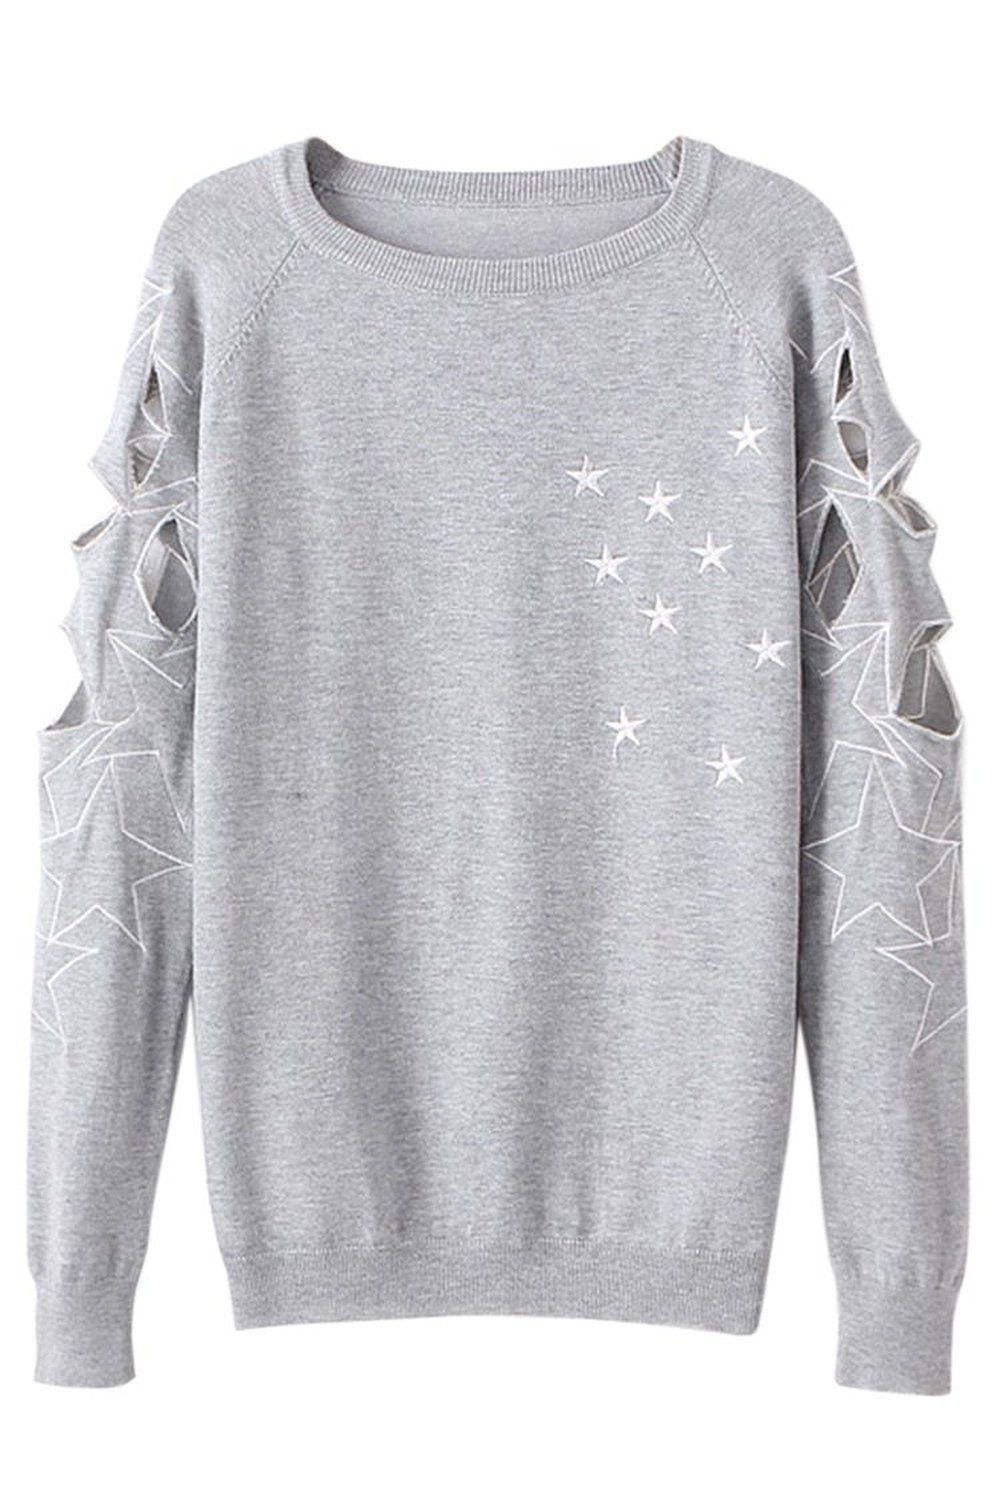 Pink queen embroidery stars hollow sleeve fleece sweaters round neck blouse tops at amazon women's clothing store: